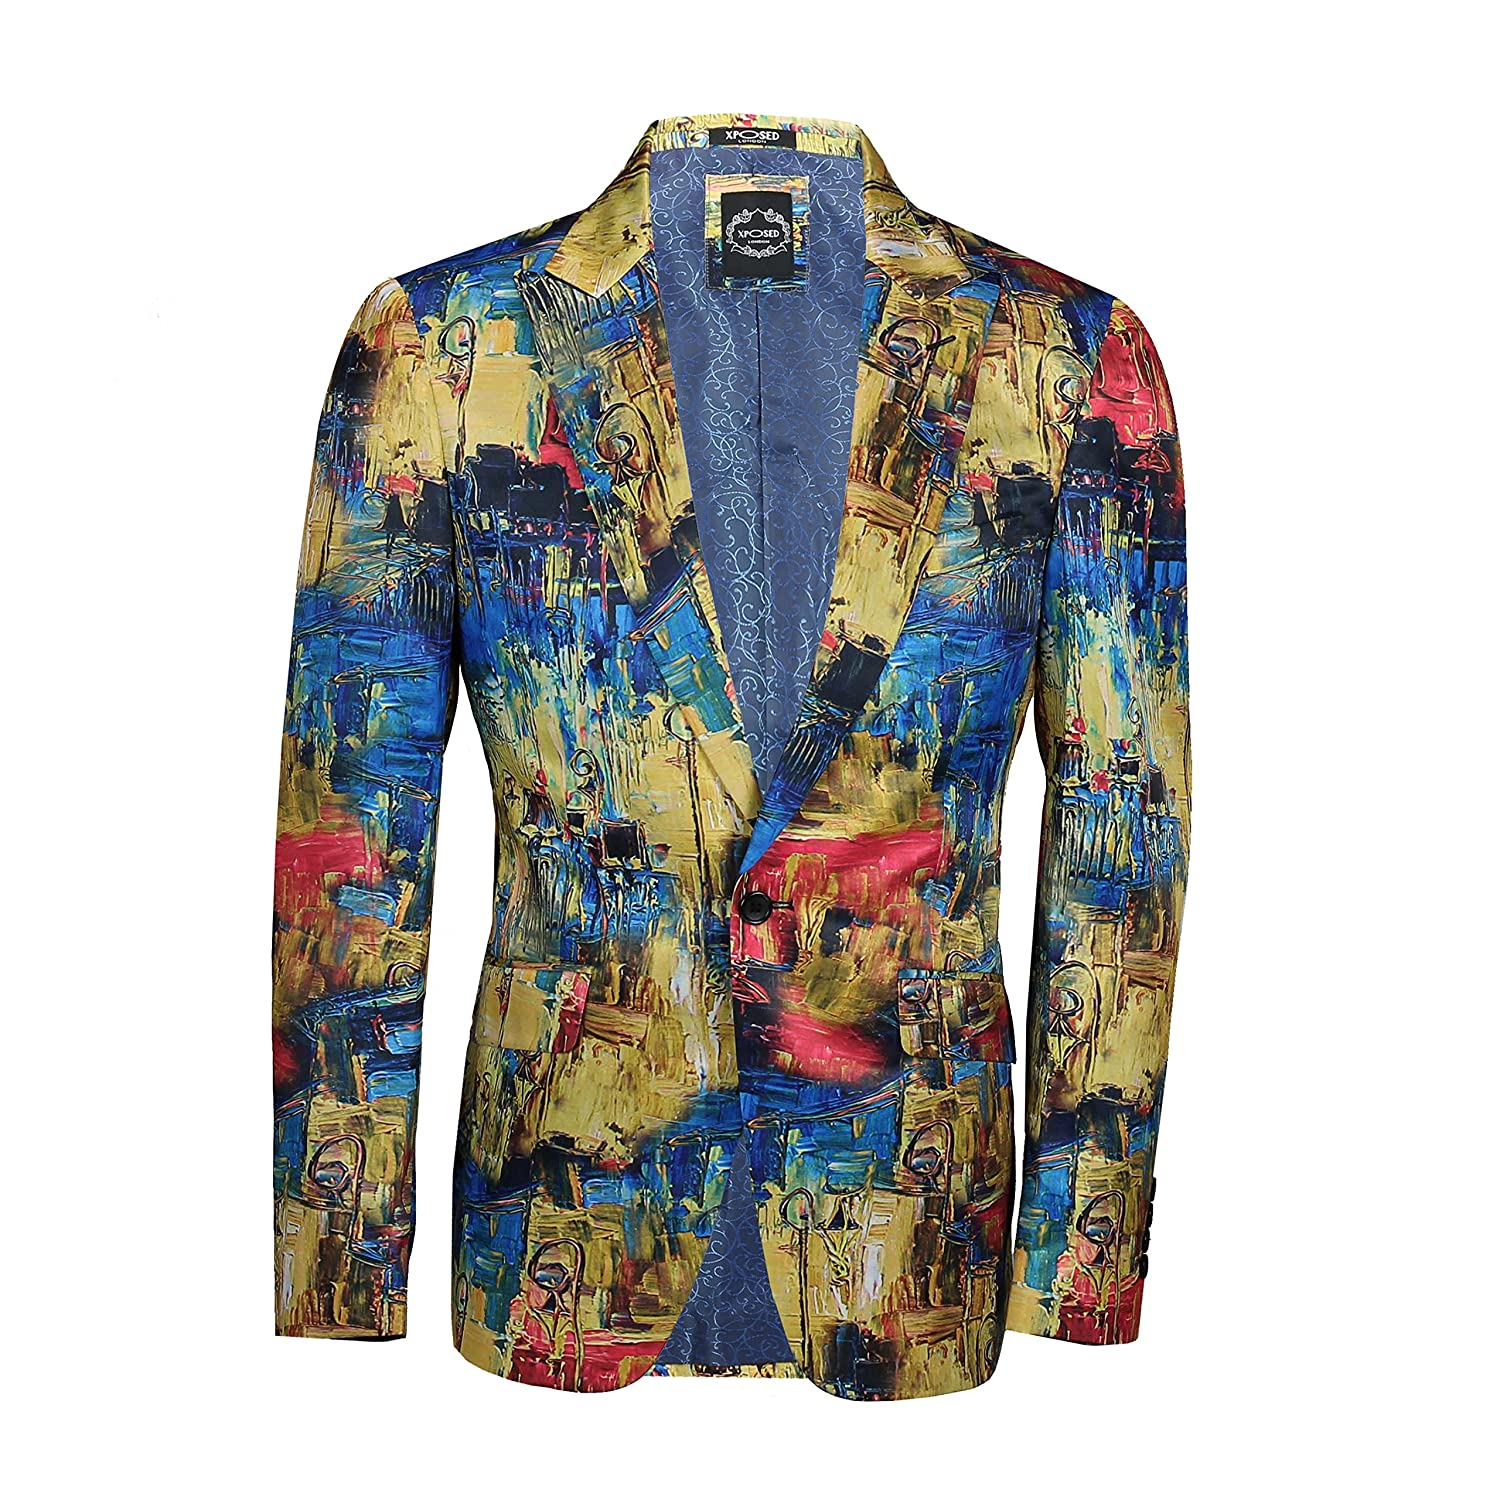 Xposed Mens Vintage Retro Blazer multicolour Hand Painted Effect Print Designer Style Slim Fit Jacket